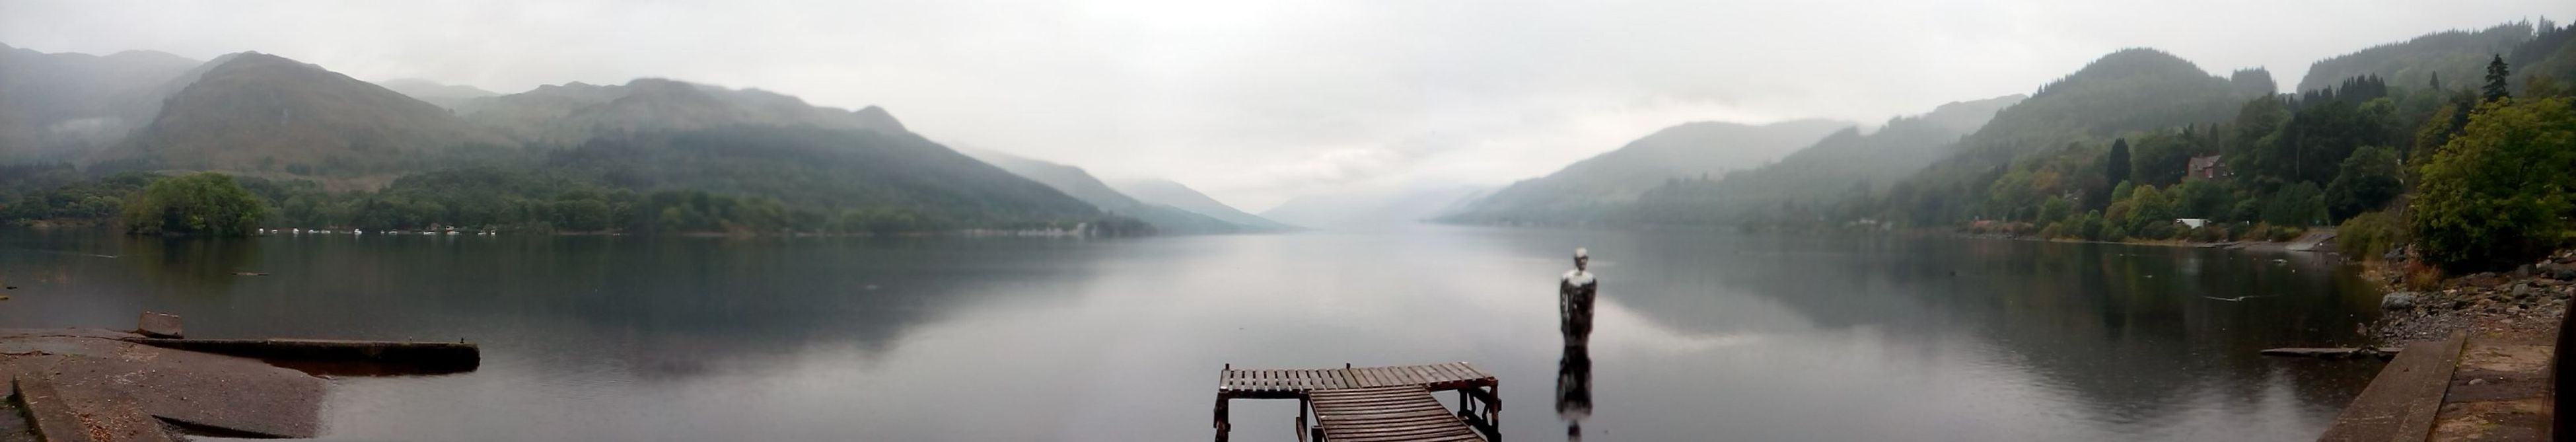 The Calmness Within Loch Earn on a misty day...